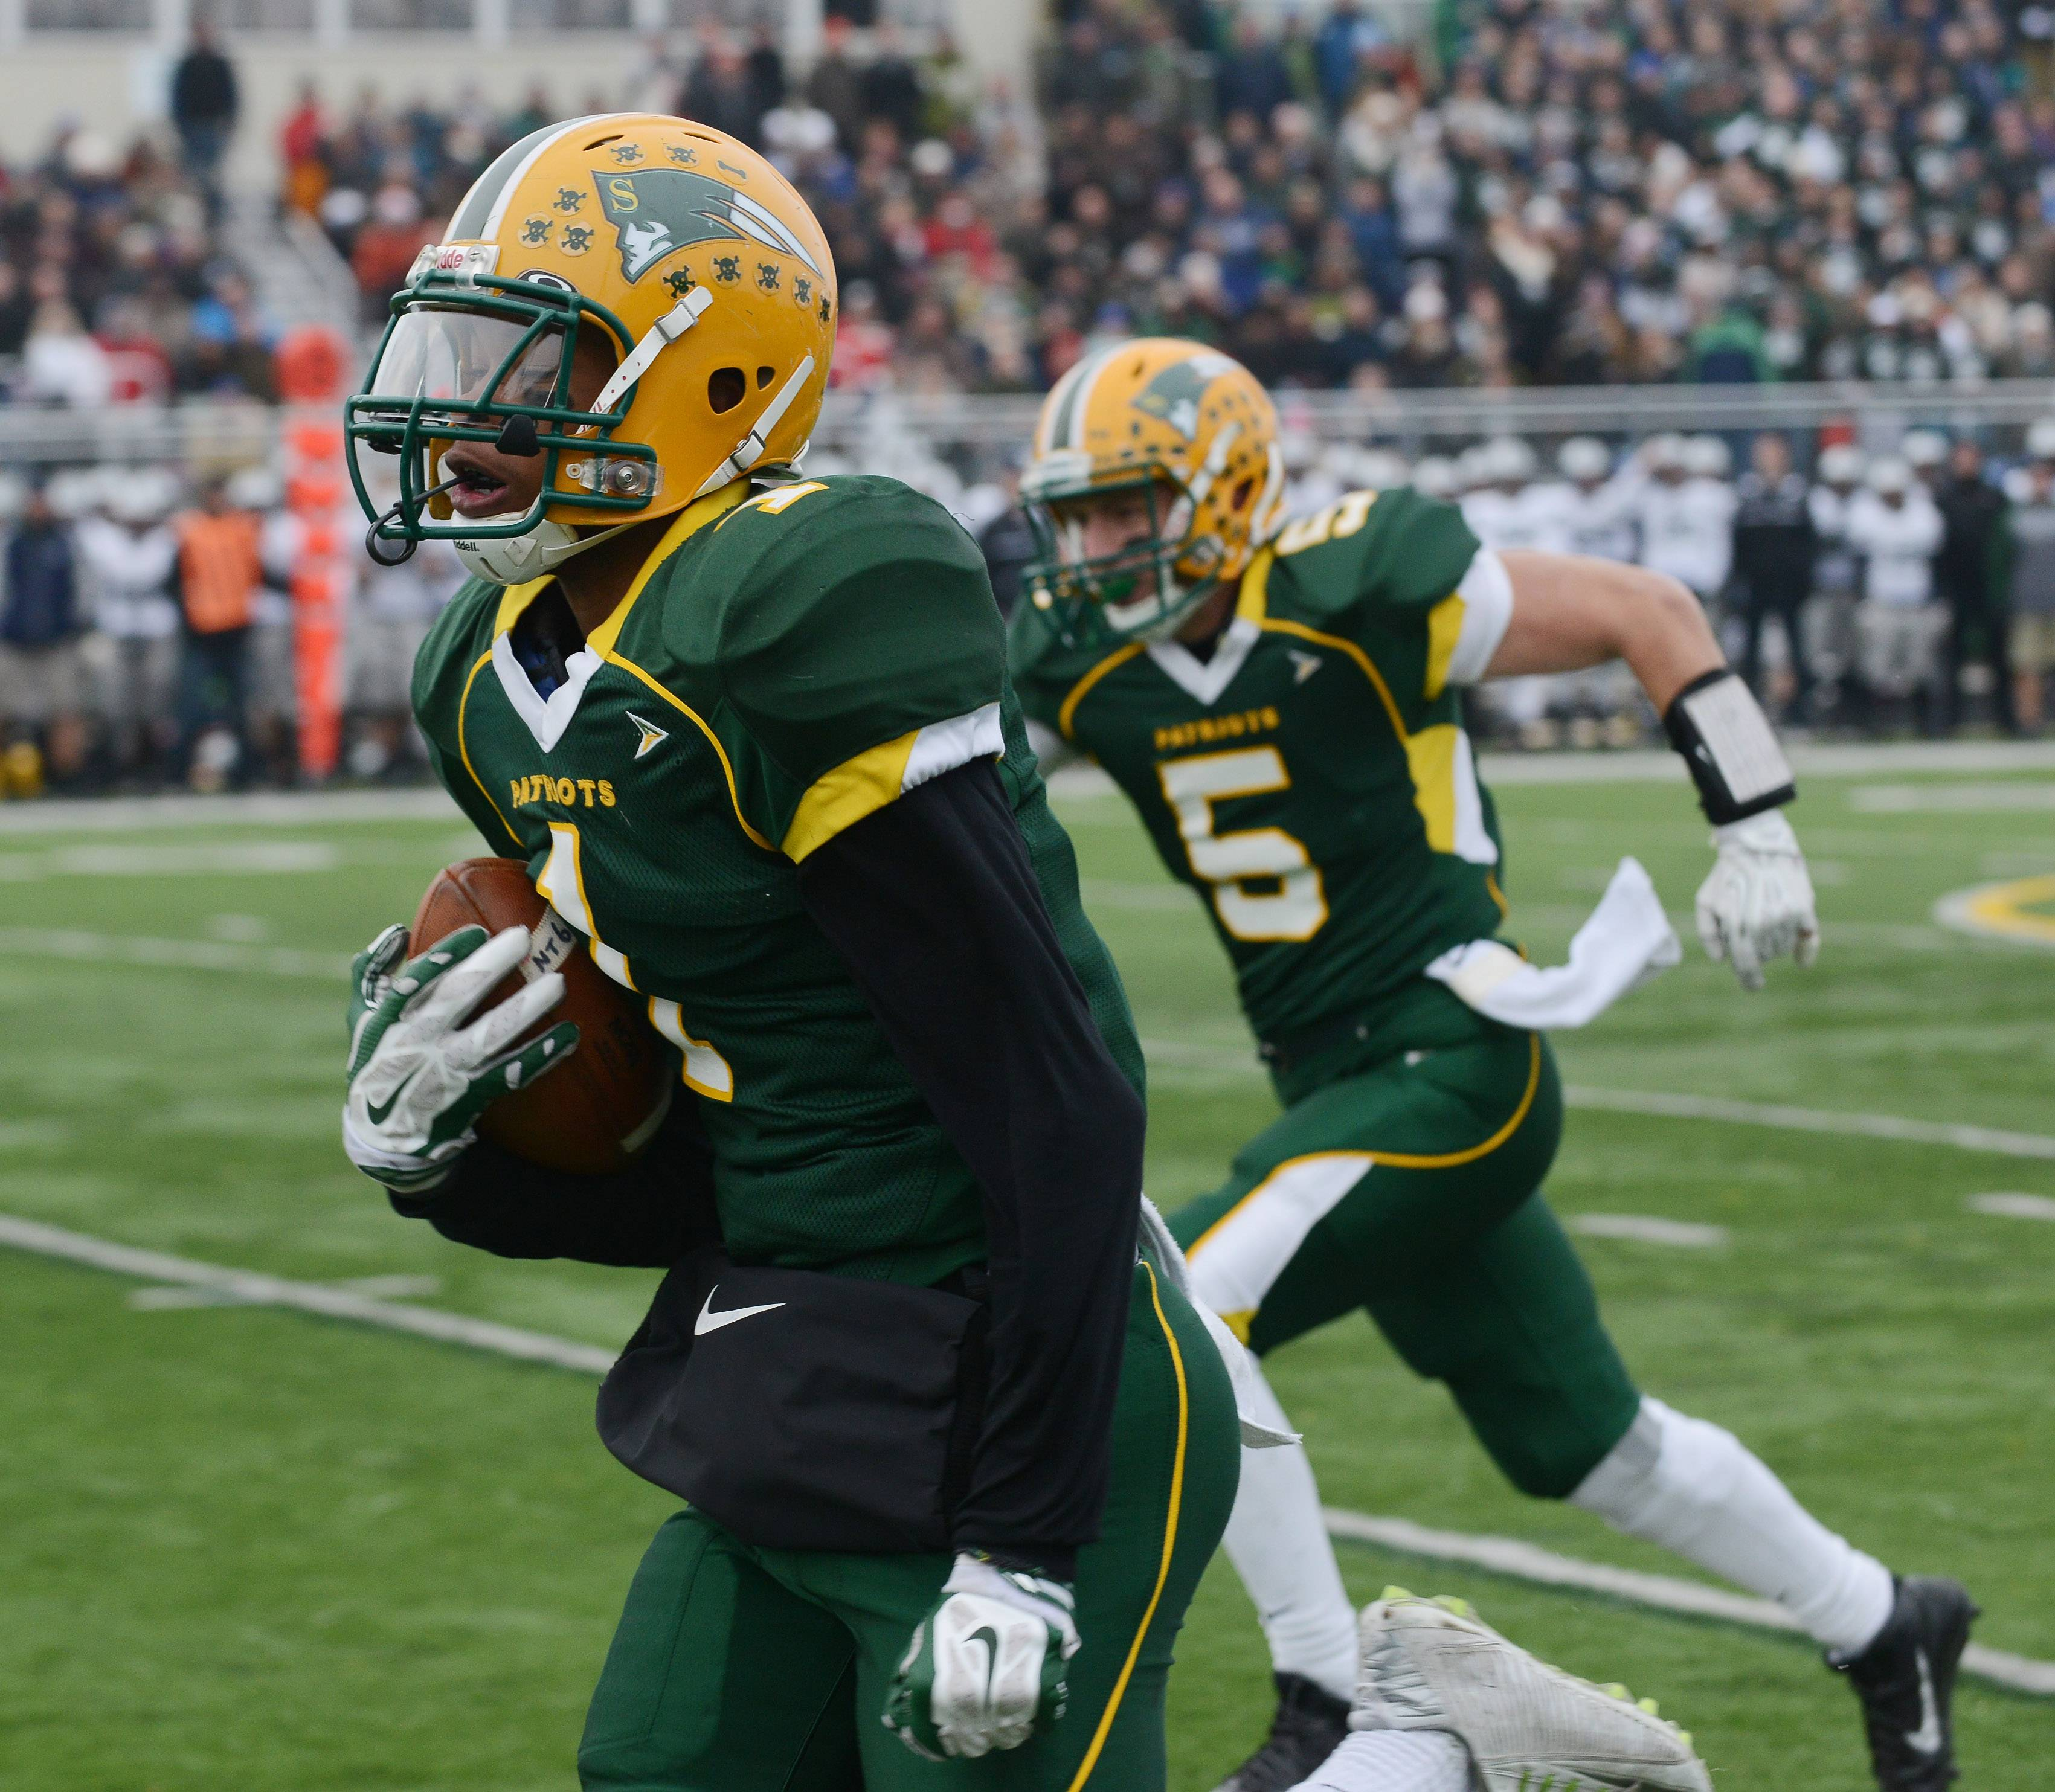 Stevenson's Jeremy Webb carries celebrates a touchdown against New Trier in Class 8A state quarterfinal play in Lincolnshire. The Patriots meet Homewood-Flossmoor for the state championship at 7 p.m. Saturday in Champaign.